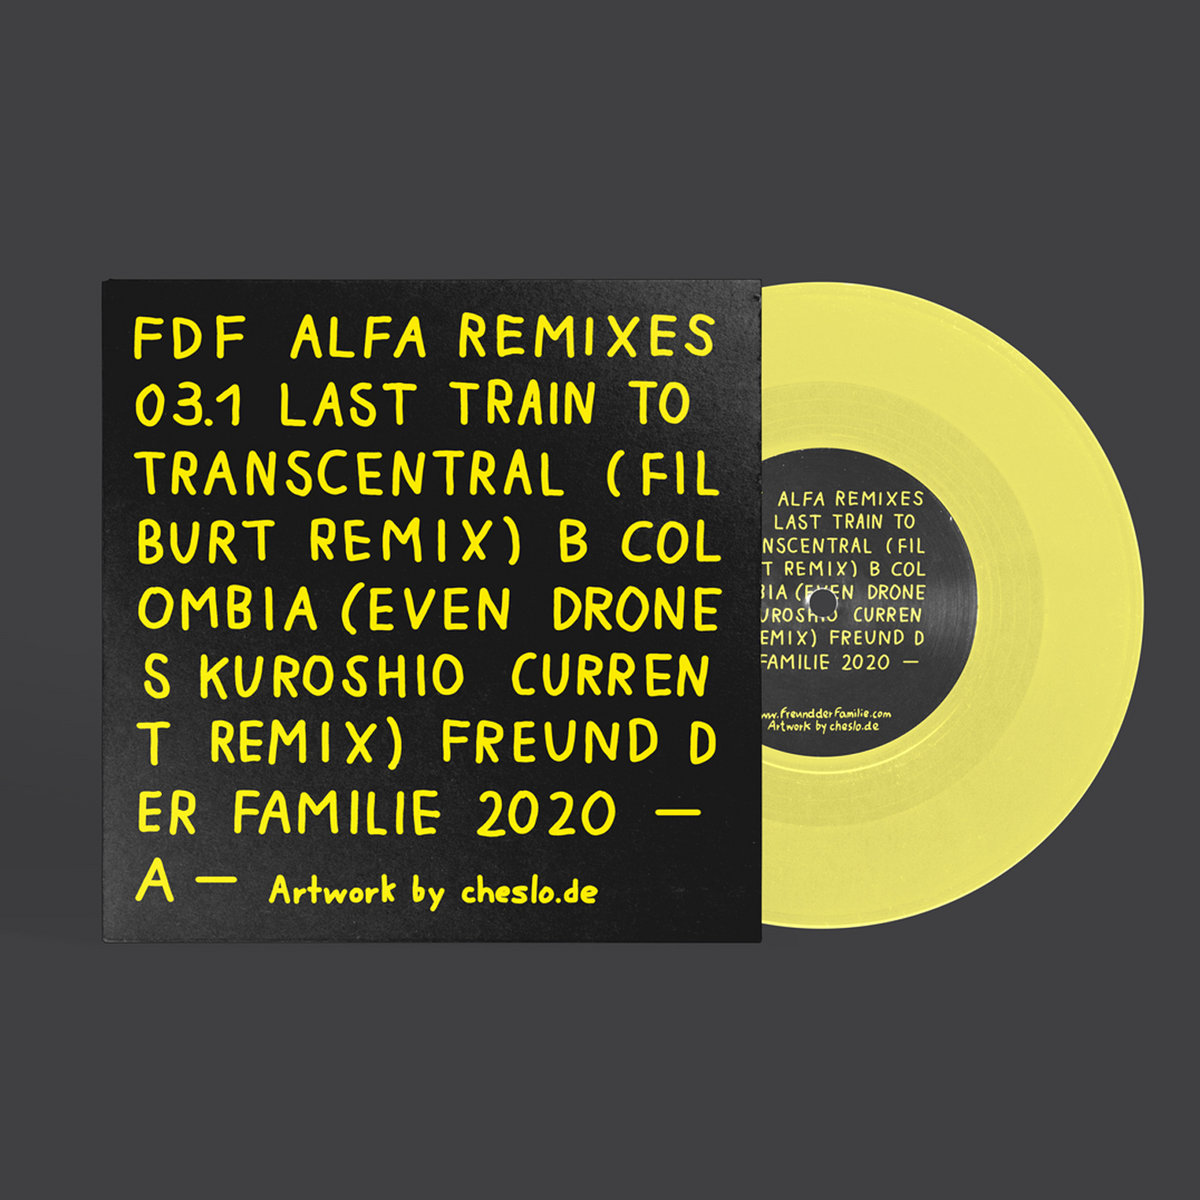 Alfa Remixes 03.1